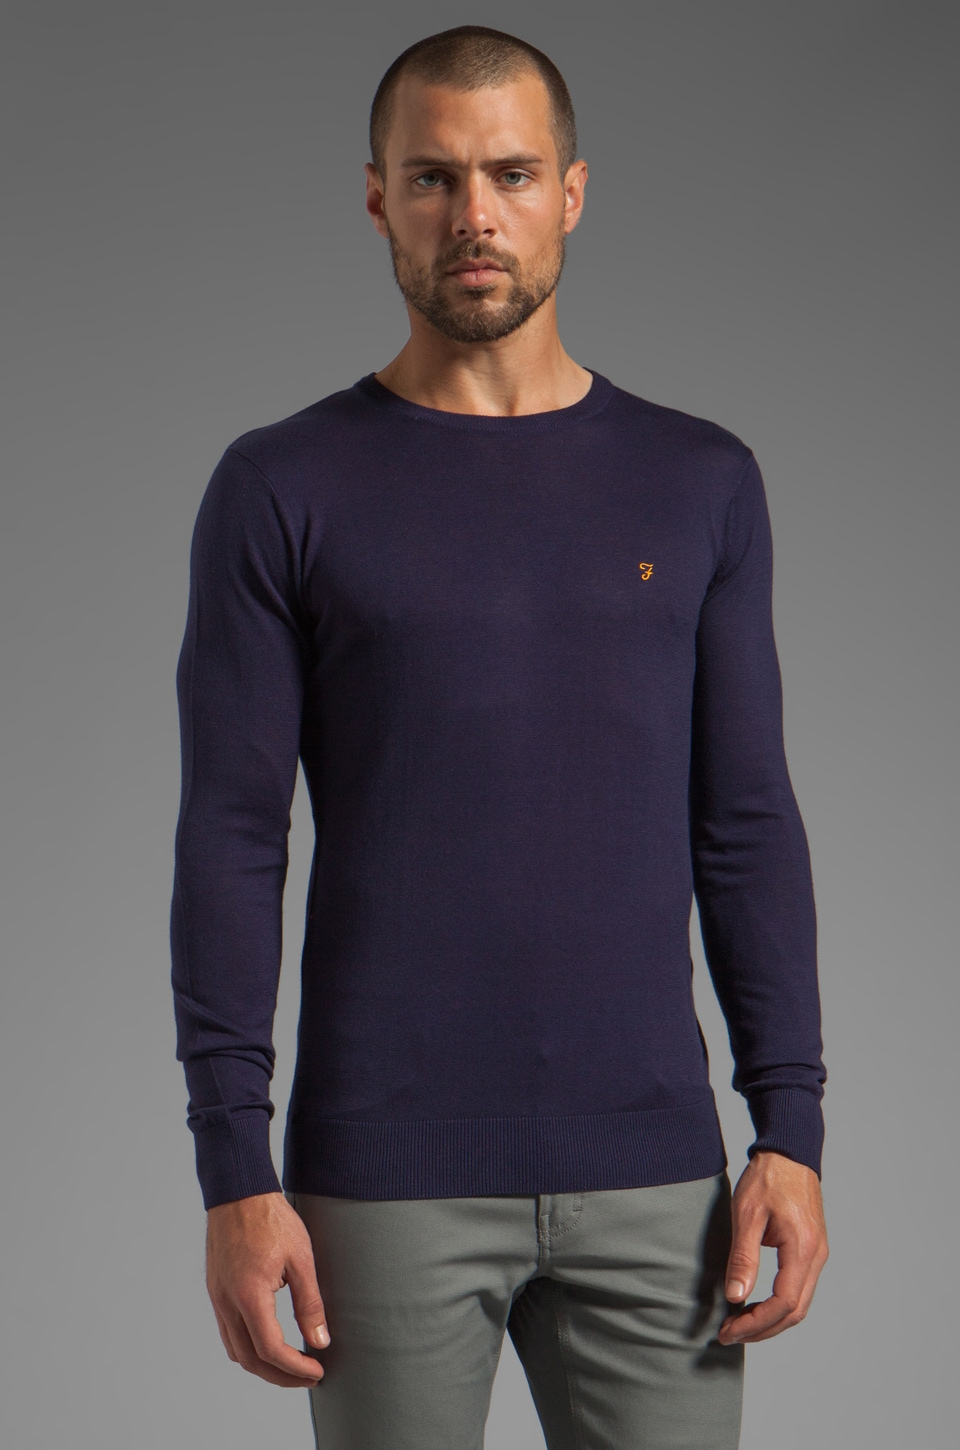 FARAH VINTAGE Fontaine Crew Neck Knit in Dark Indigo